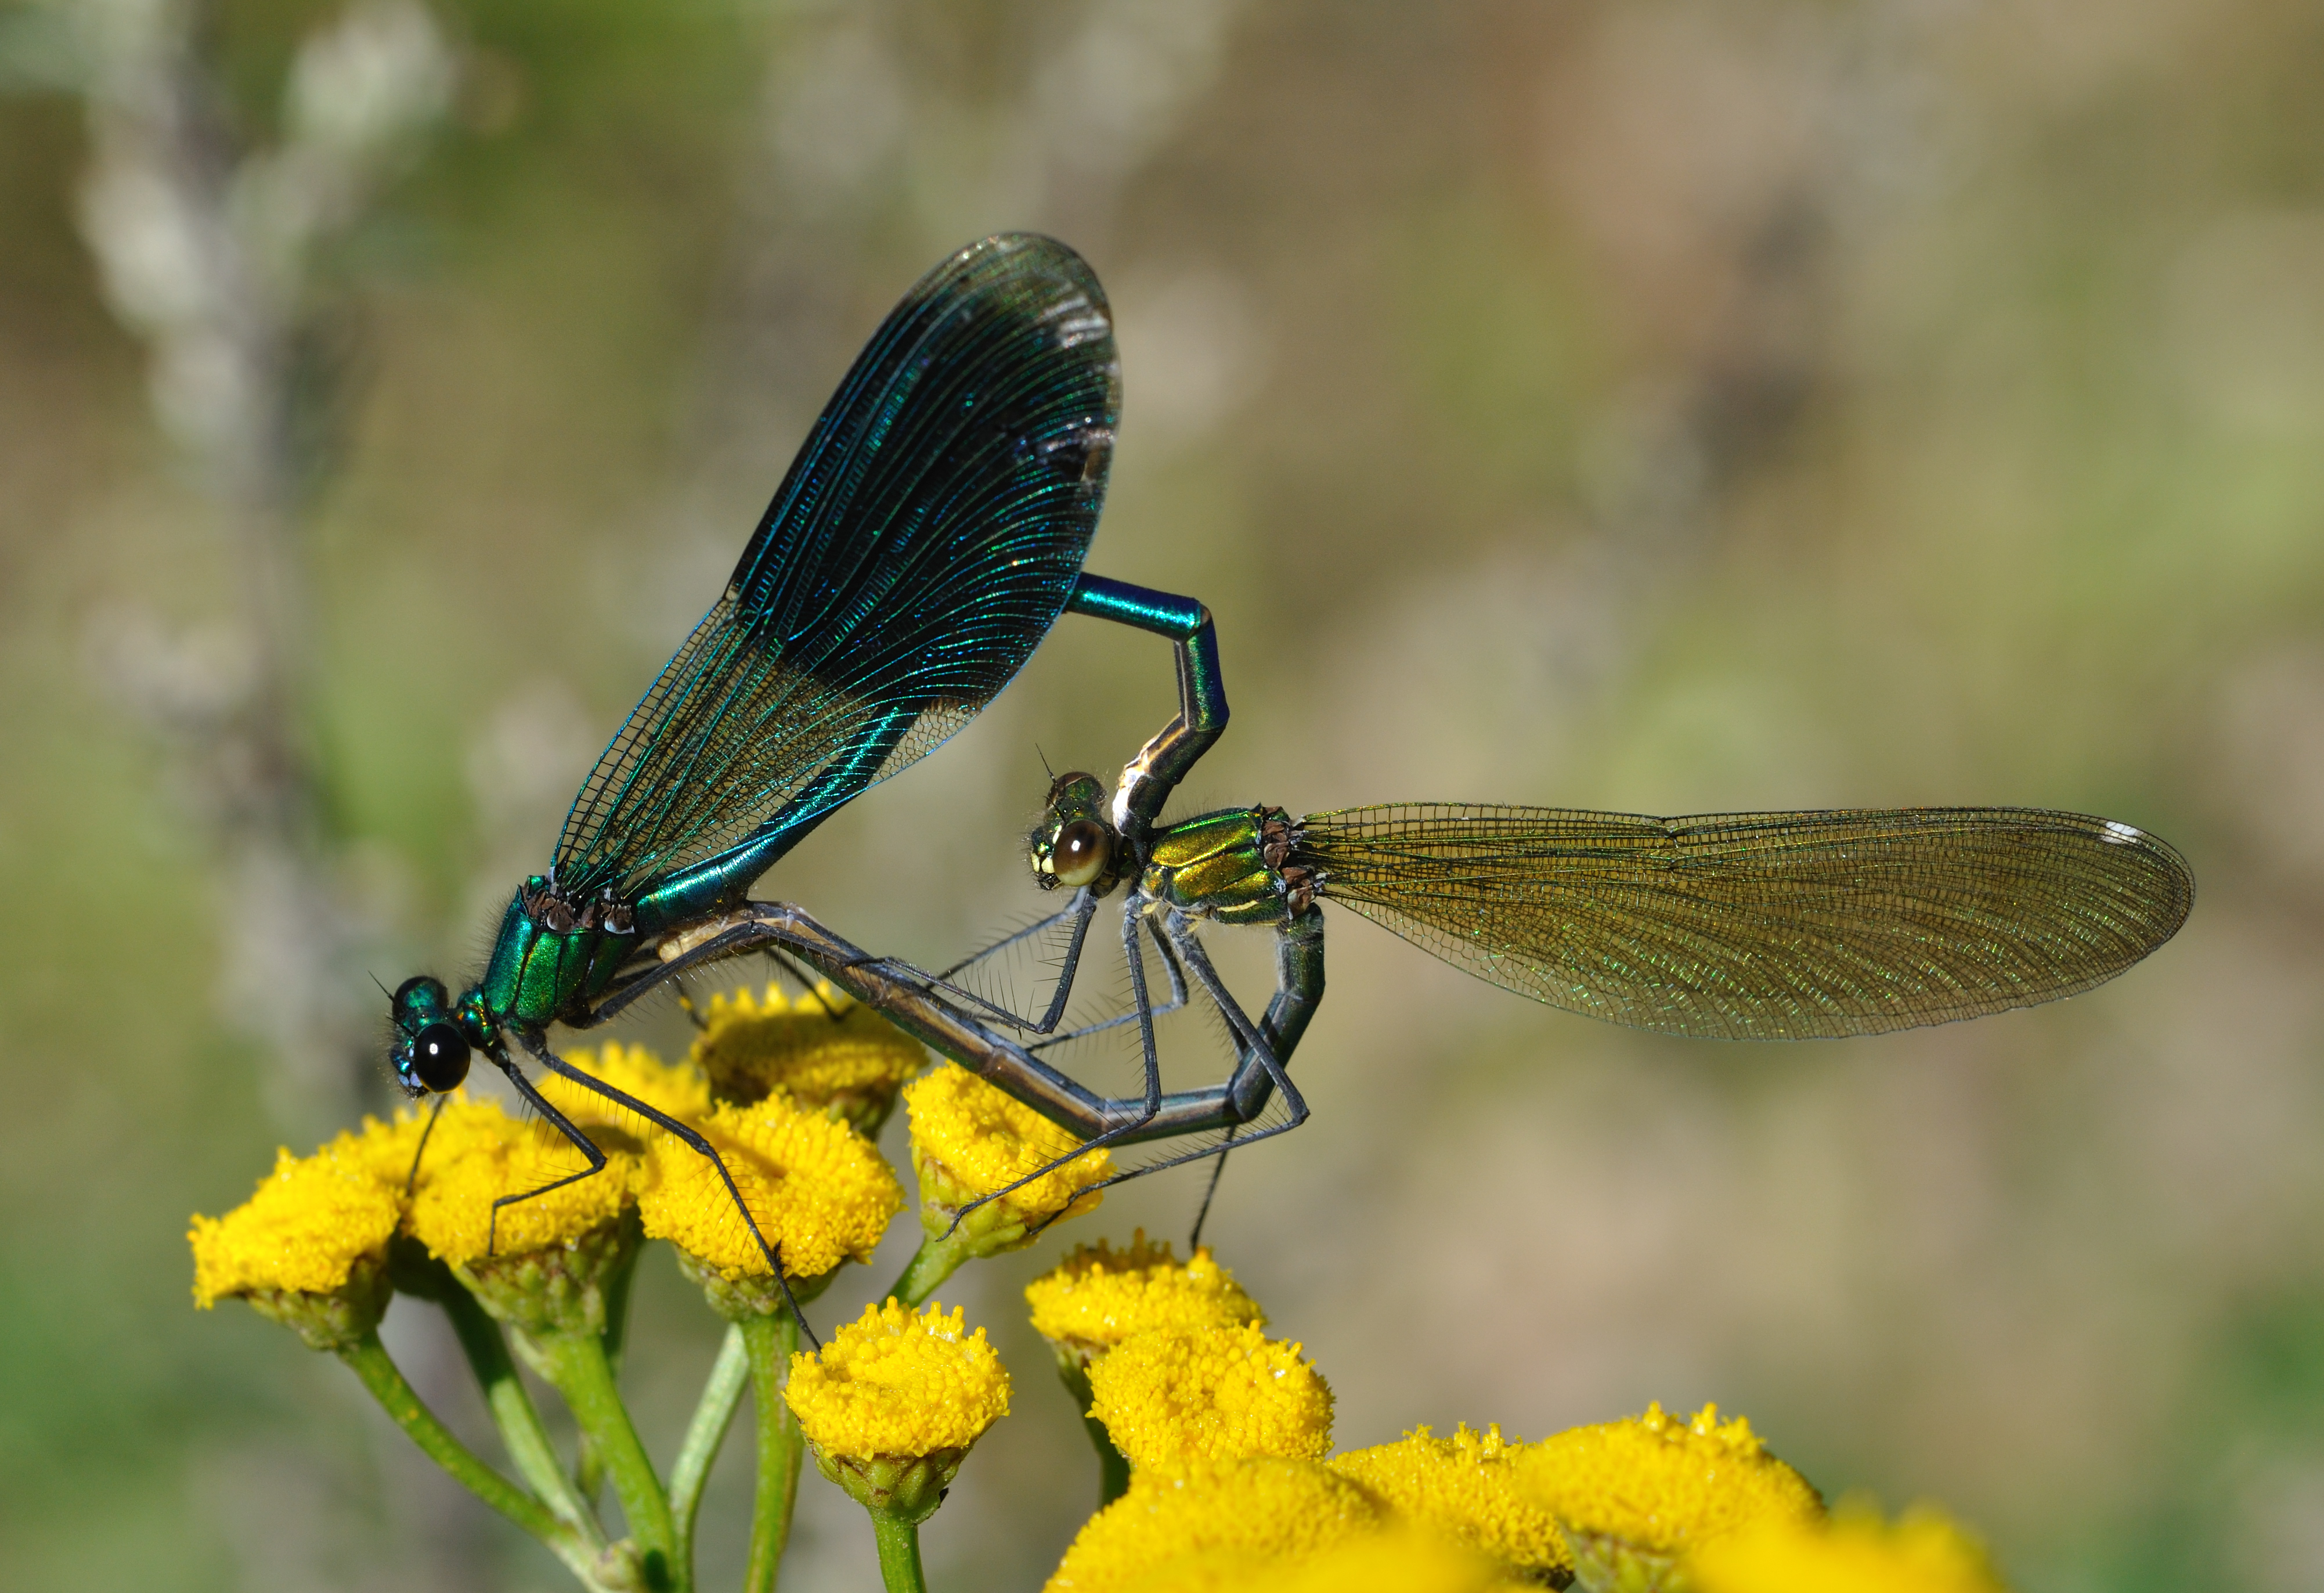 Male (left) and female of the banded demoiselle, Calopteryx splendens, showing their differently coloured wings